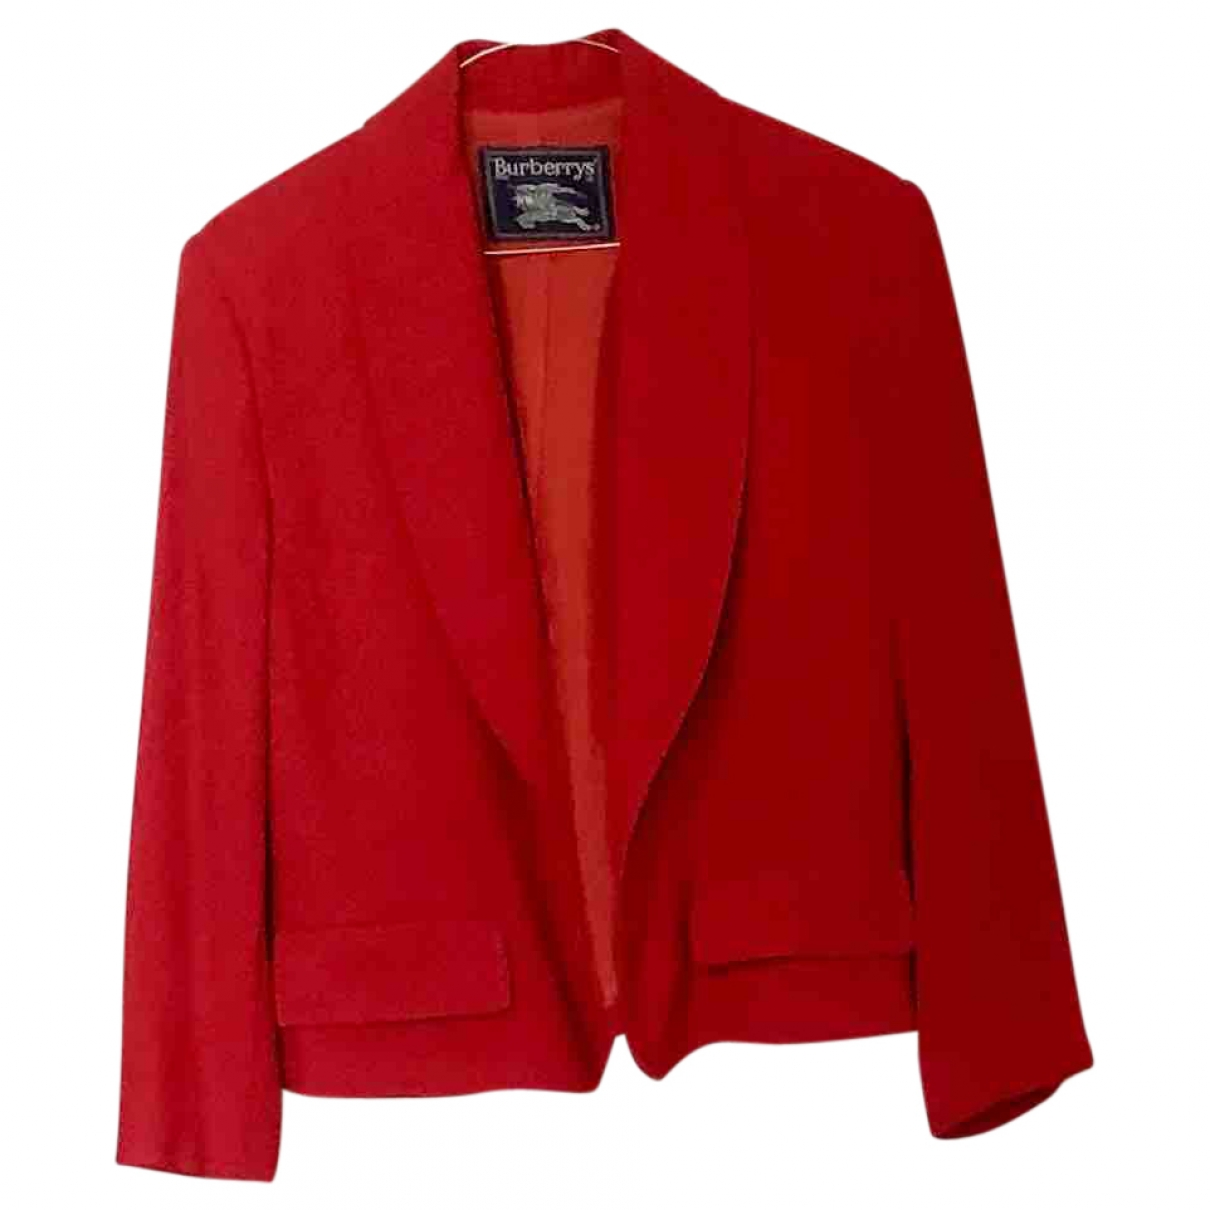 Burberry \N Jacke in  Rot Wolle